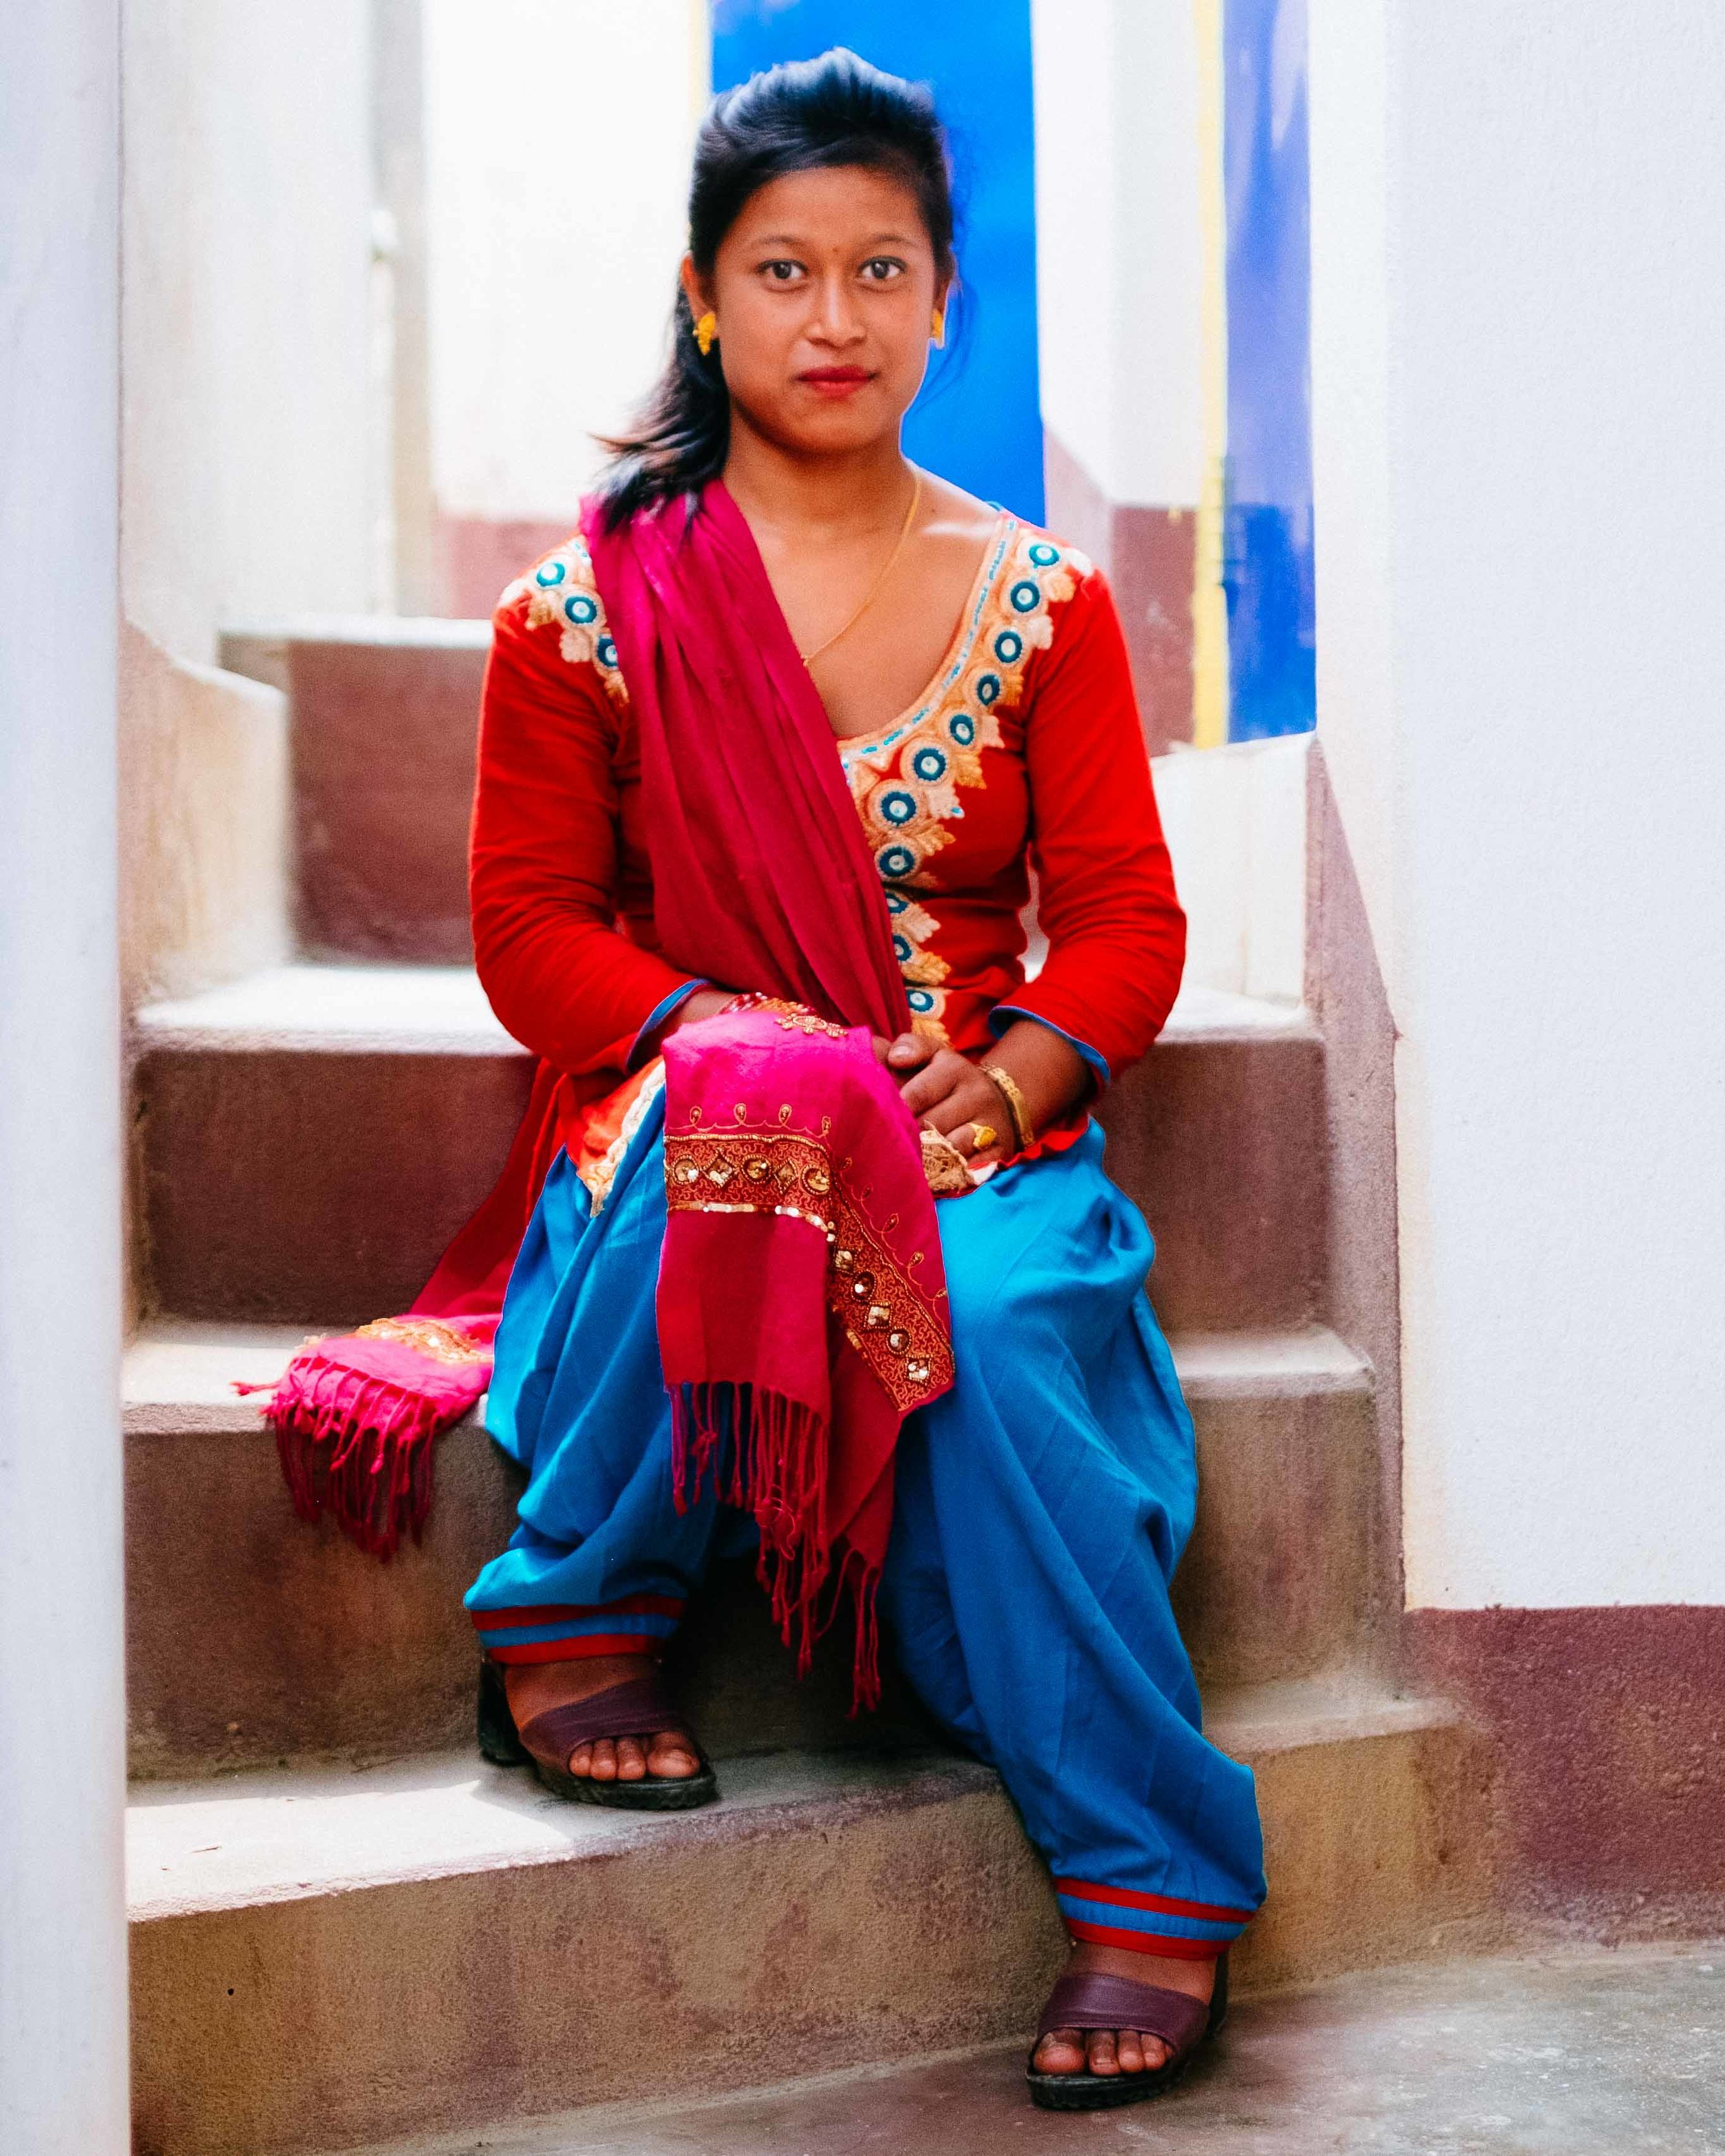 Jinsa, a Nepali trafficking victim that was rescued at the border of Nepal and India.